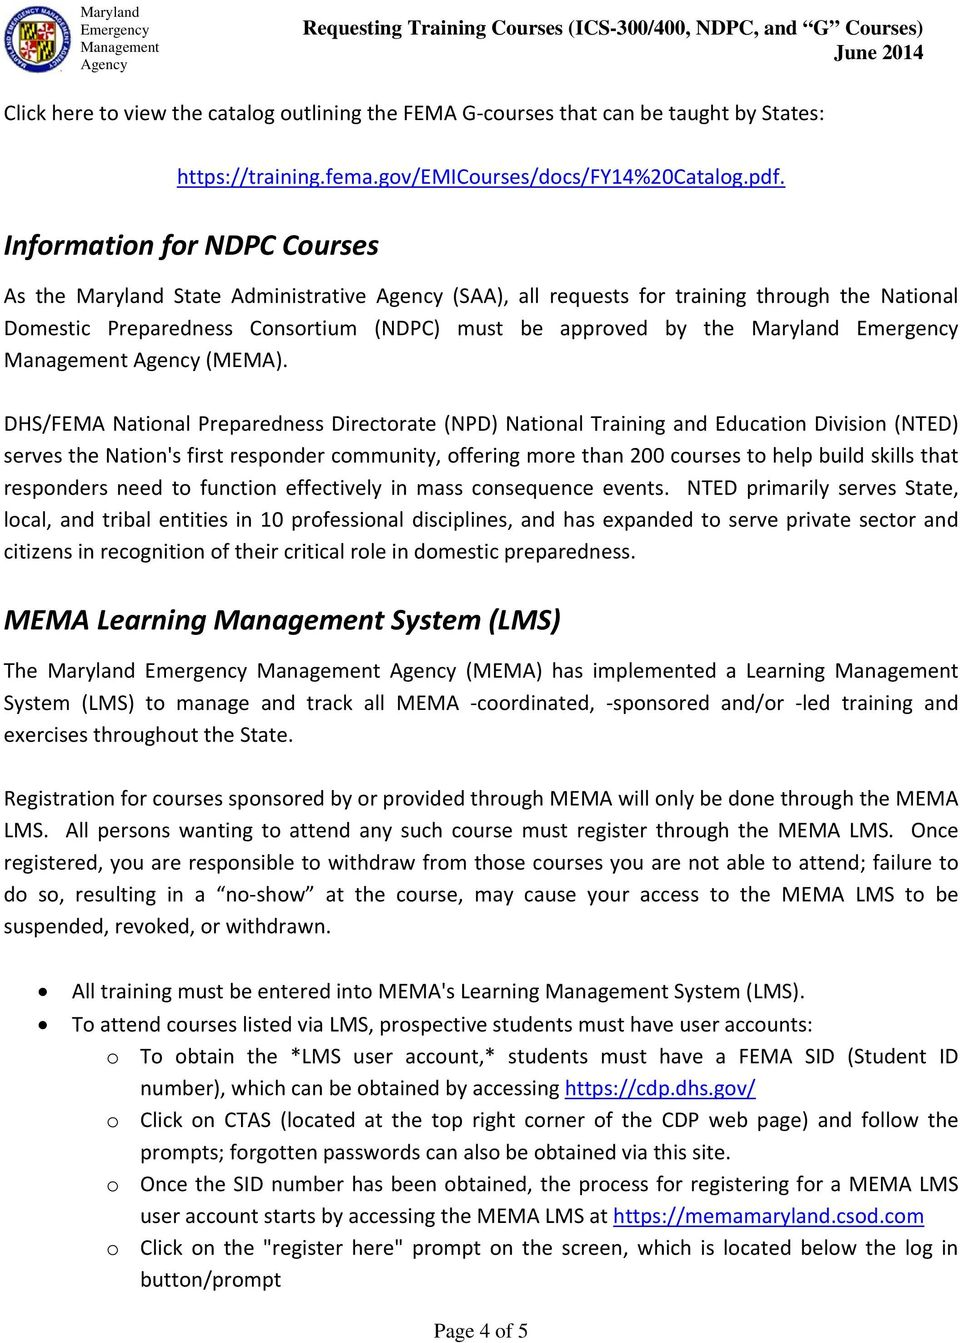 Maryland Emergency Management Agency  Requesting Training Courses